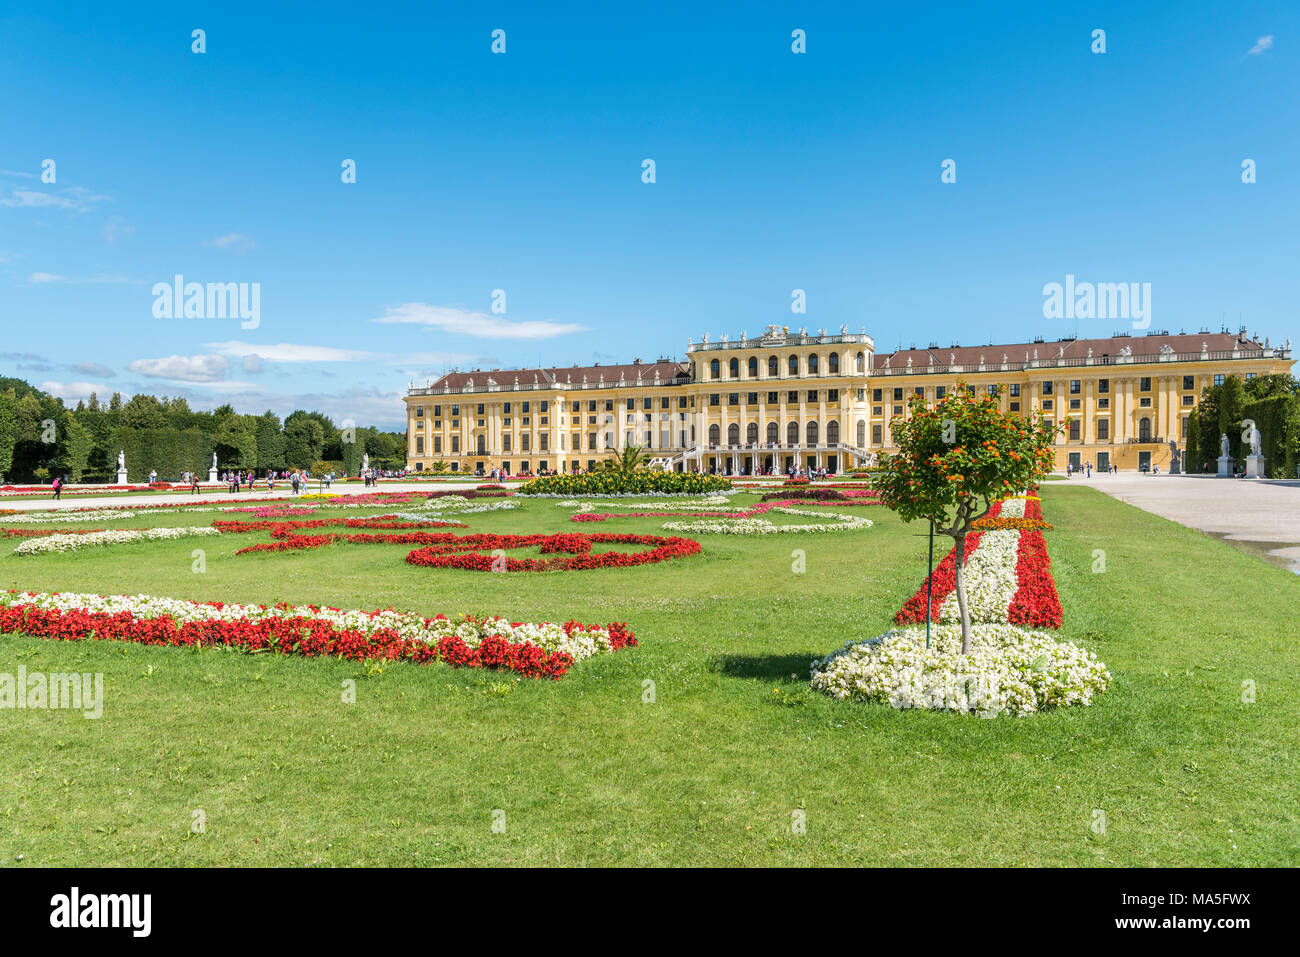 Vienna, Austria, Europe. The Great Parterre, the largest open space in the gardens of Schönbrunn Palace. - Stock Image